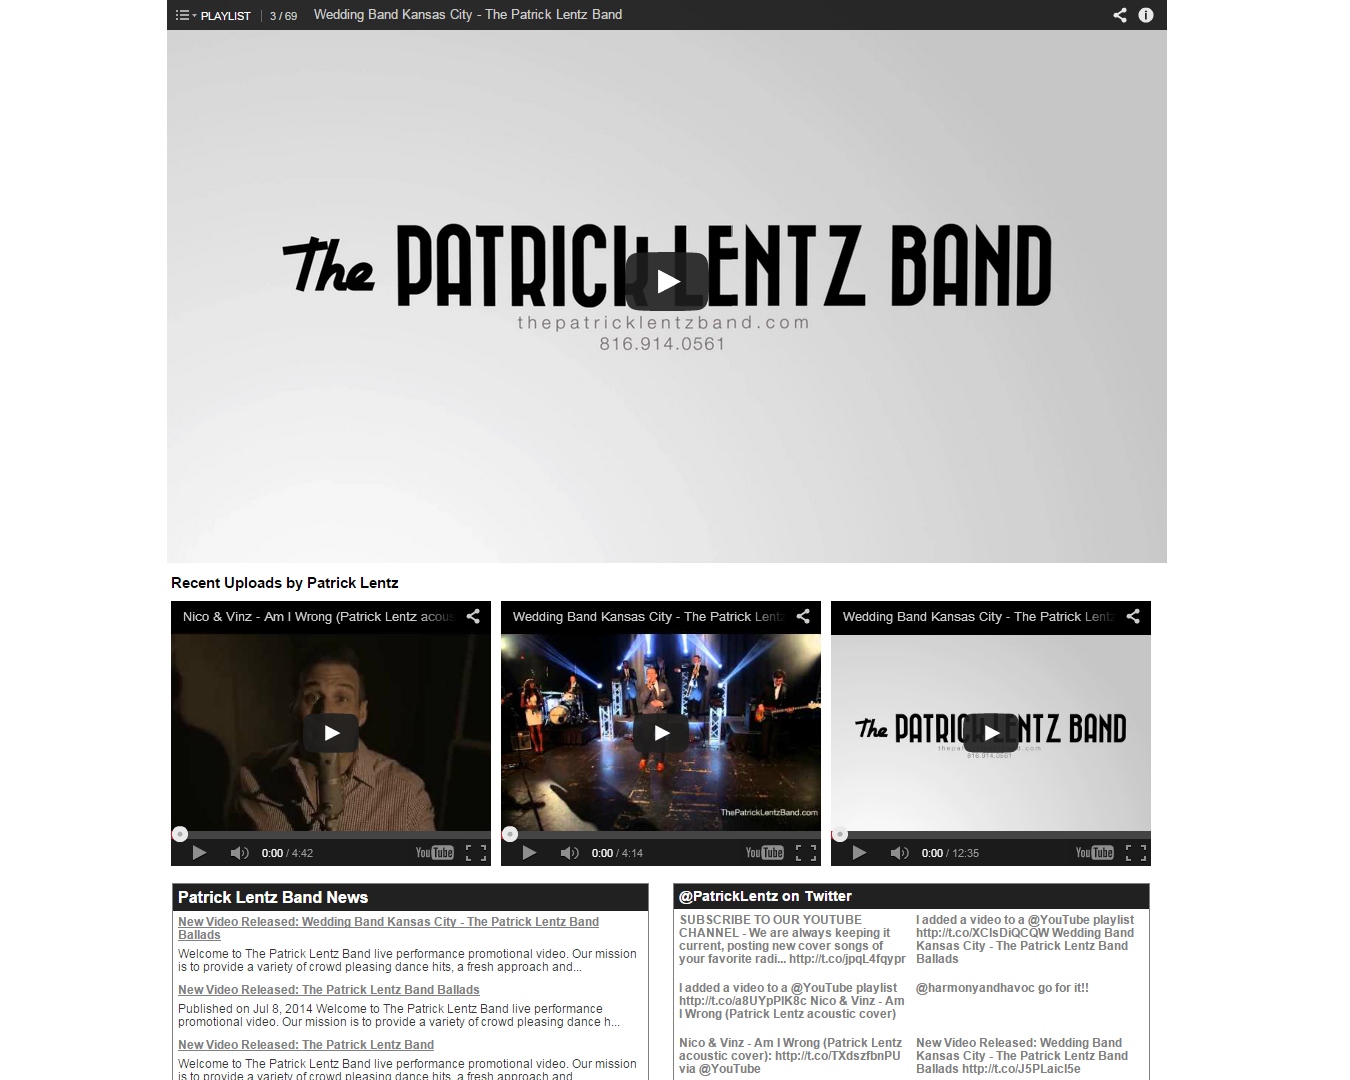 The Patrick Lentz Band